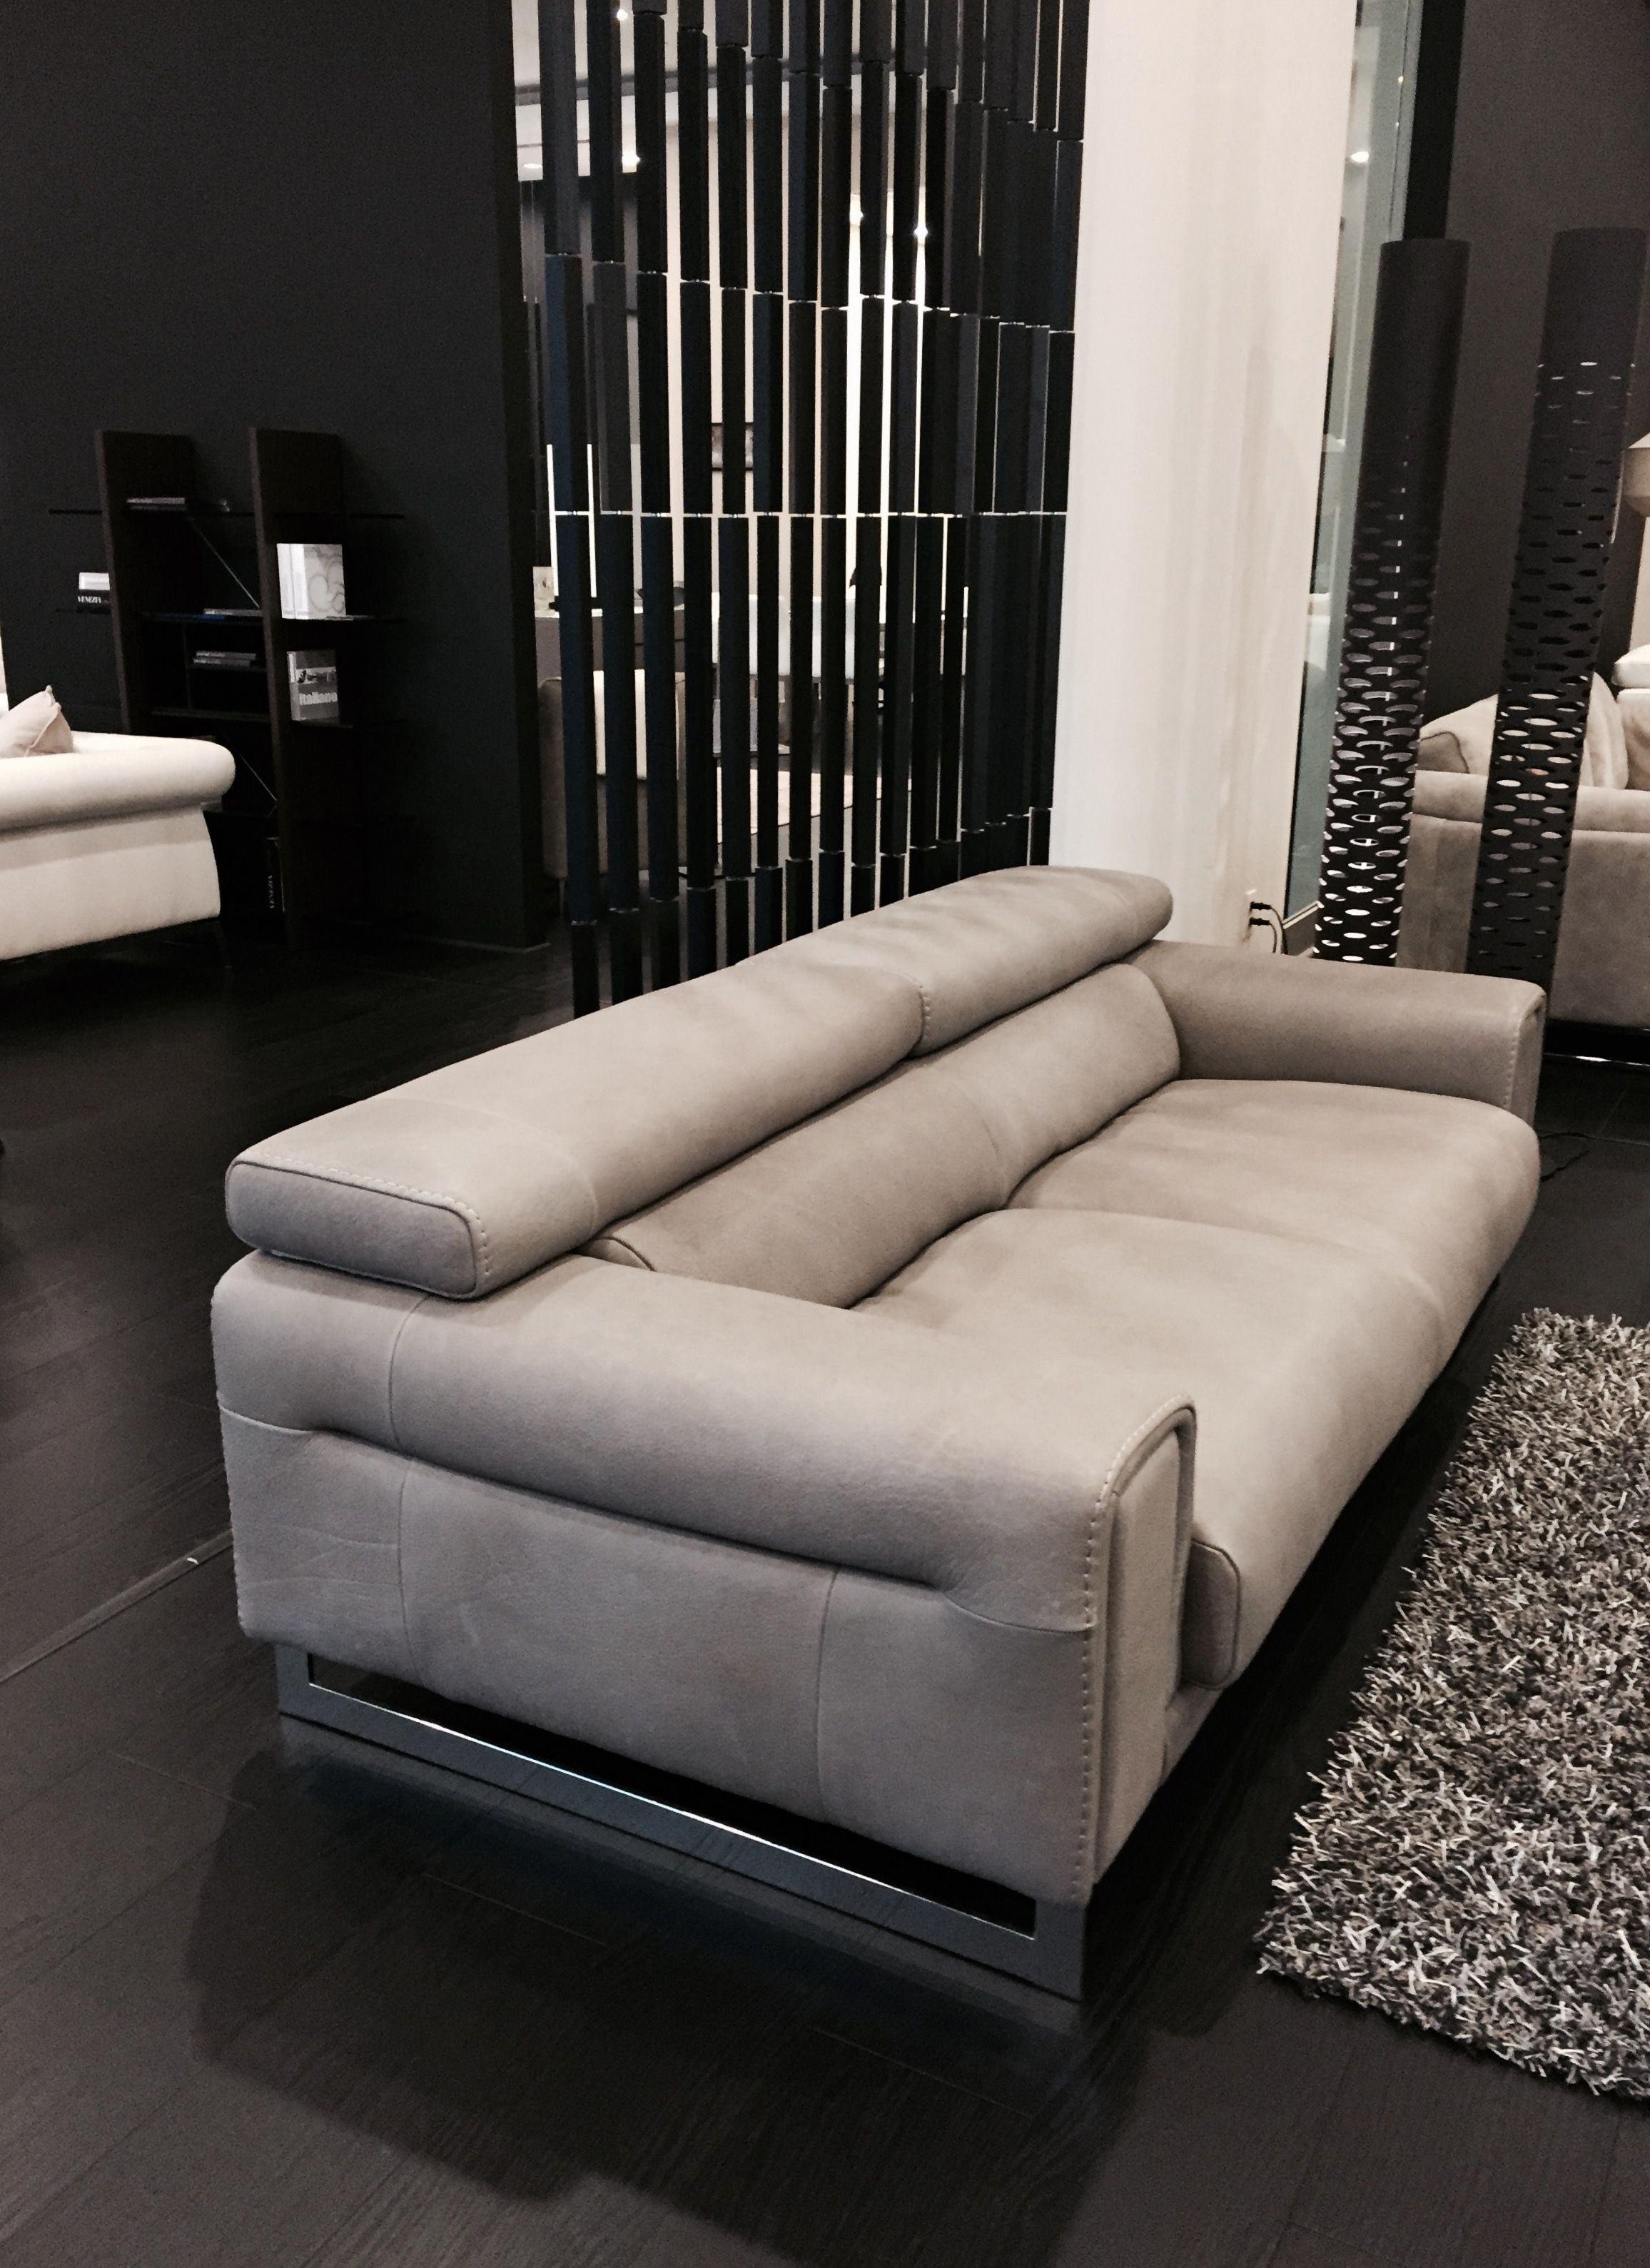 Pin By 福榮 許 On Decoration Home Luxury Furniture Sofa Sofa Bed Design Living Room Sofa Design